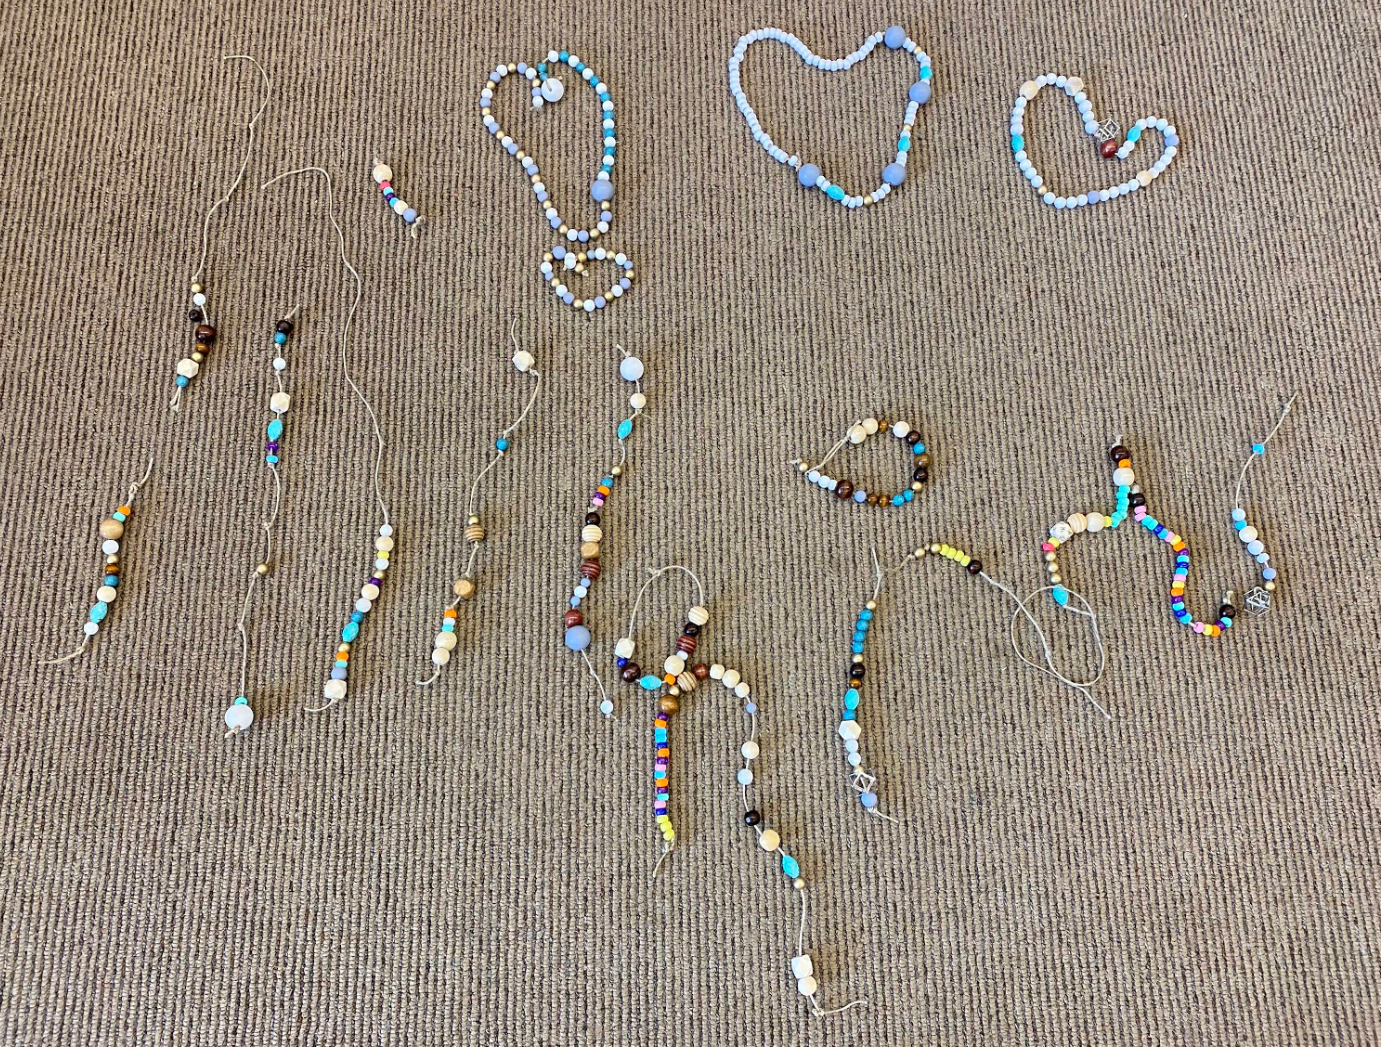 cle - beaded timeline - personal signifi